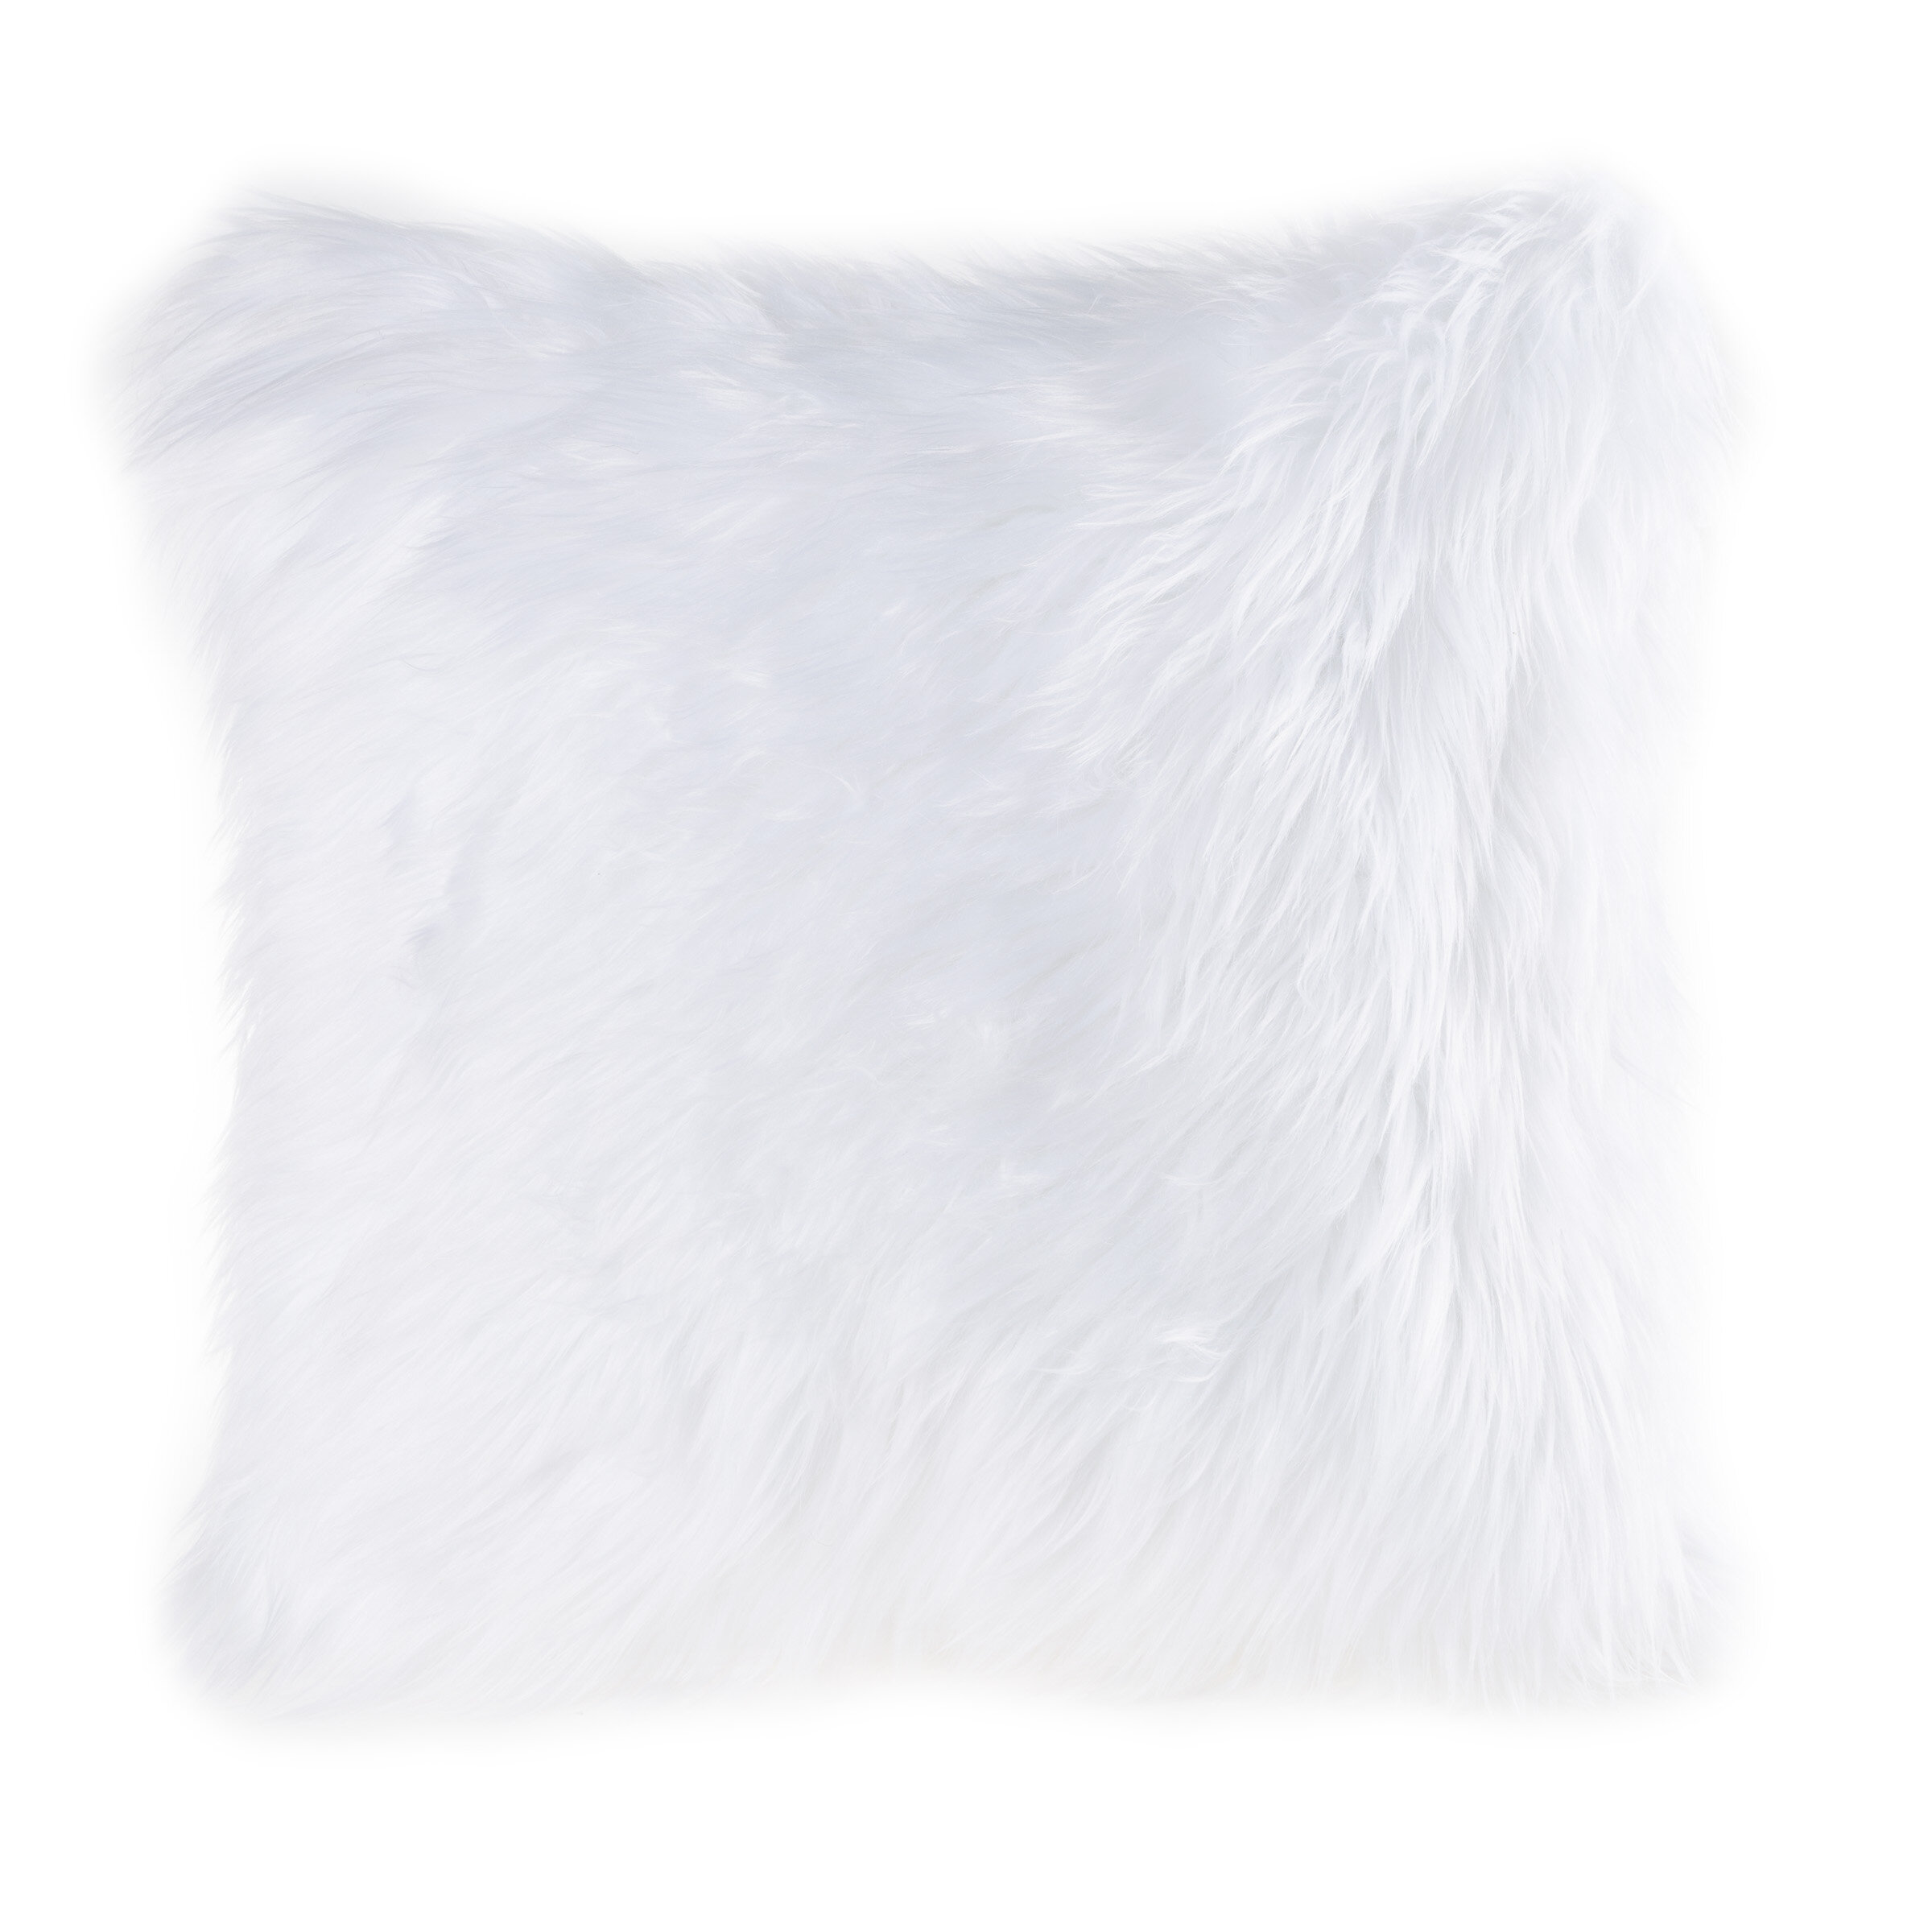 Mercer41 Seamans Square Pillow Cover And Insert Reviews Wayfair